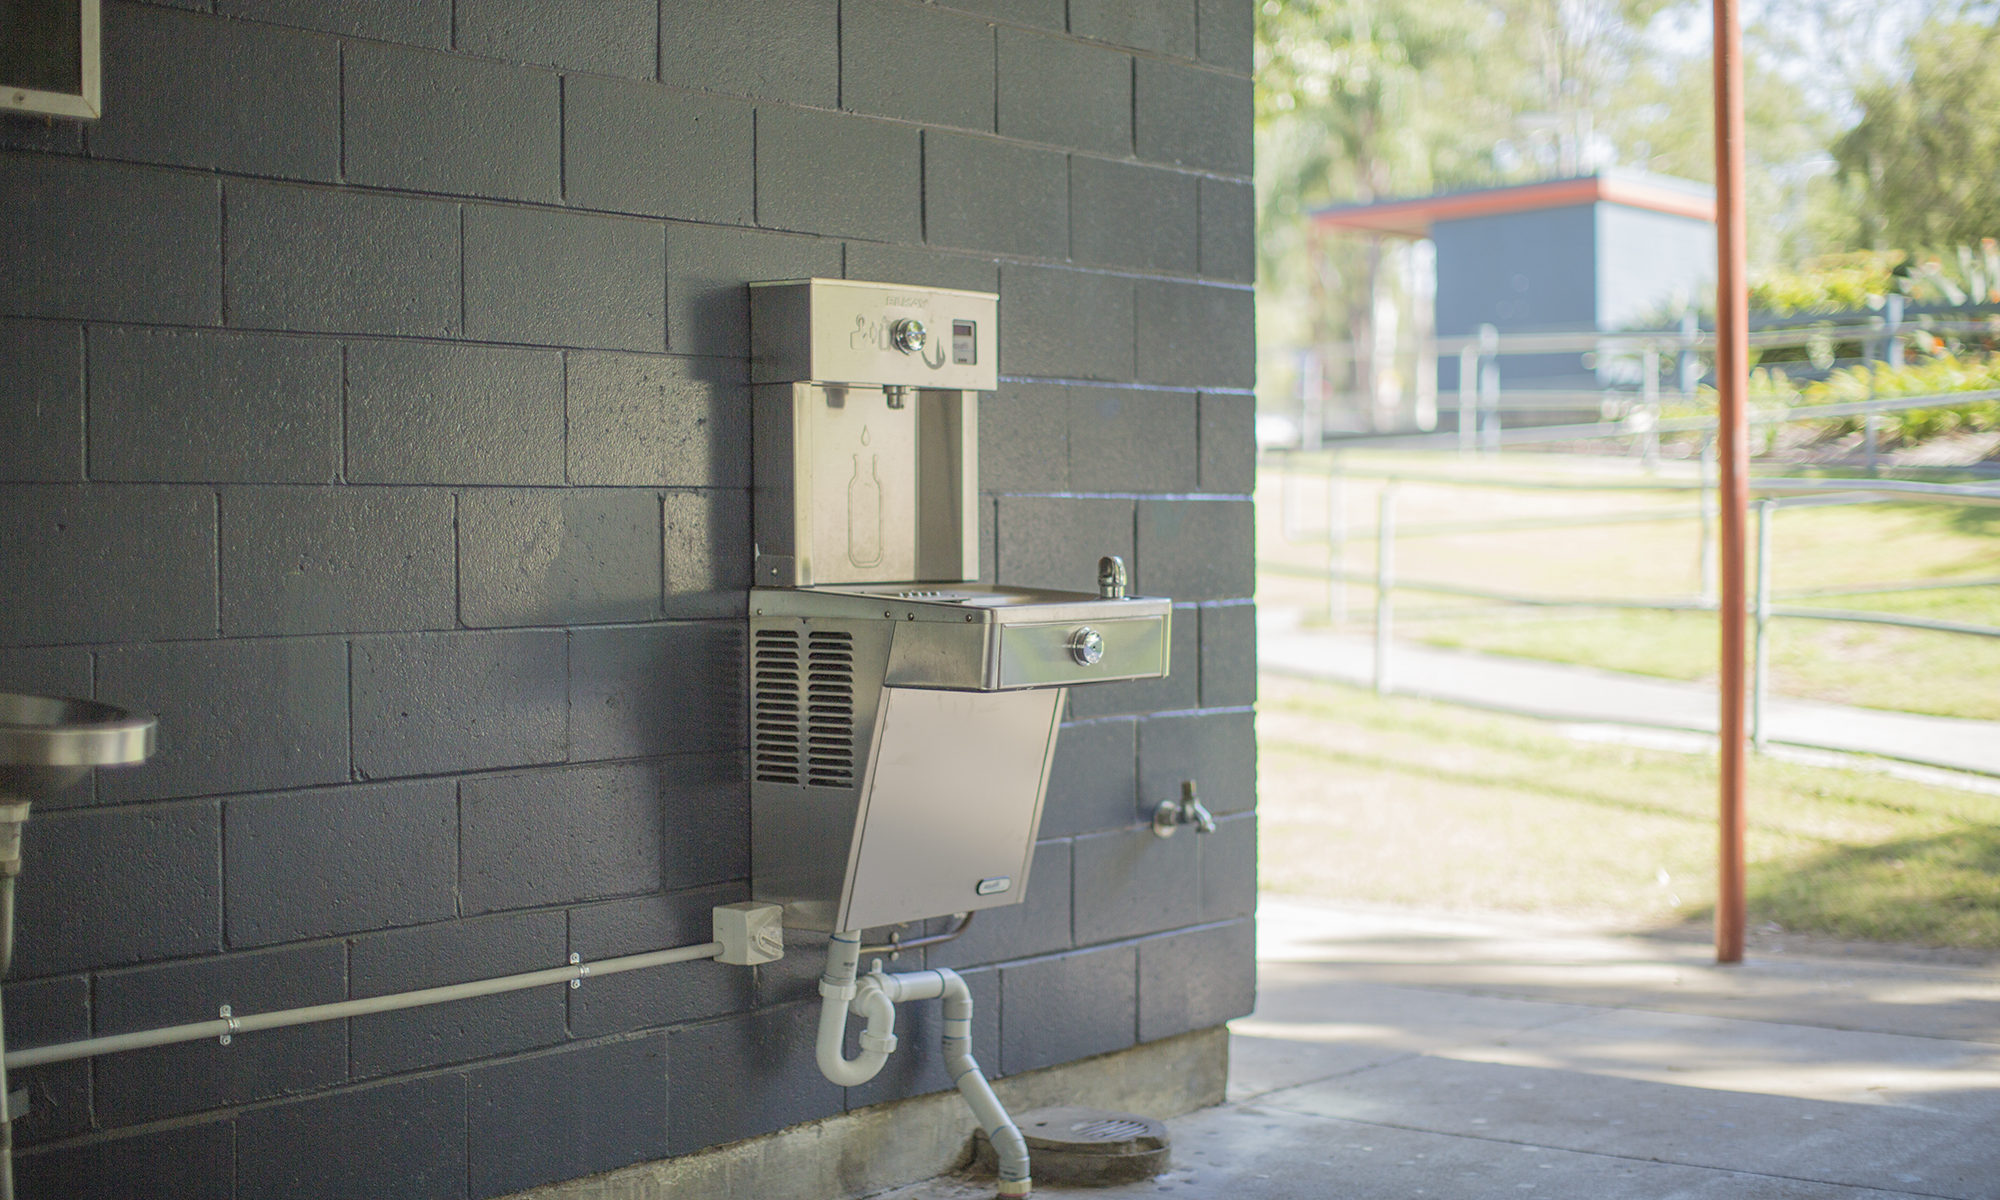 An Elkay EZH2O Vandal-Resistant Drinking Fountain and Bottle Filling Station installed in a School